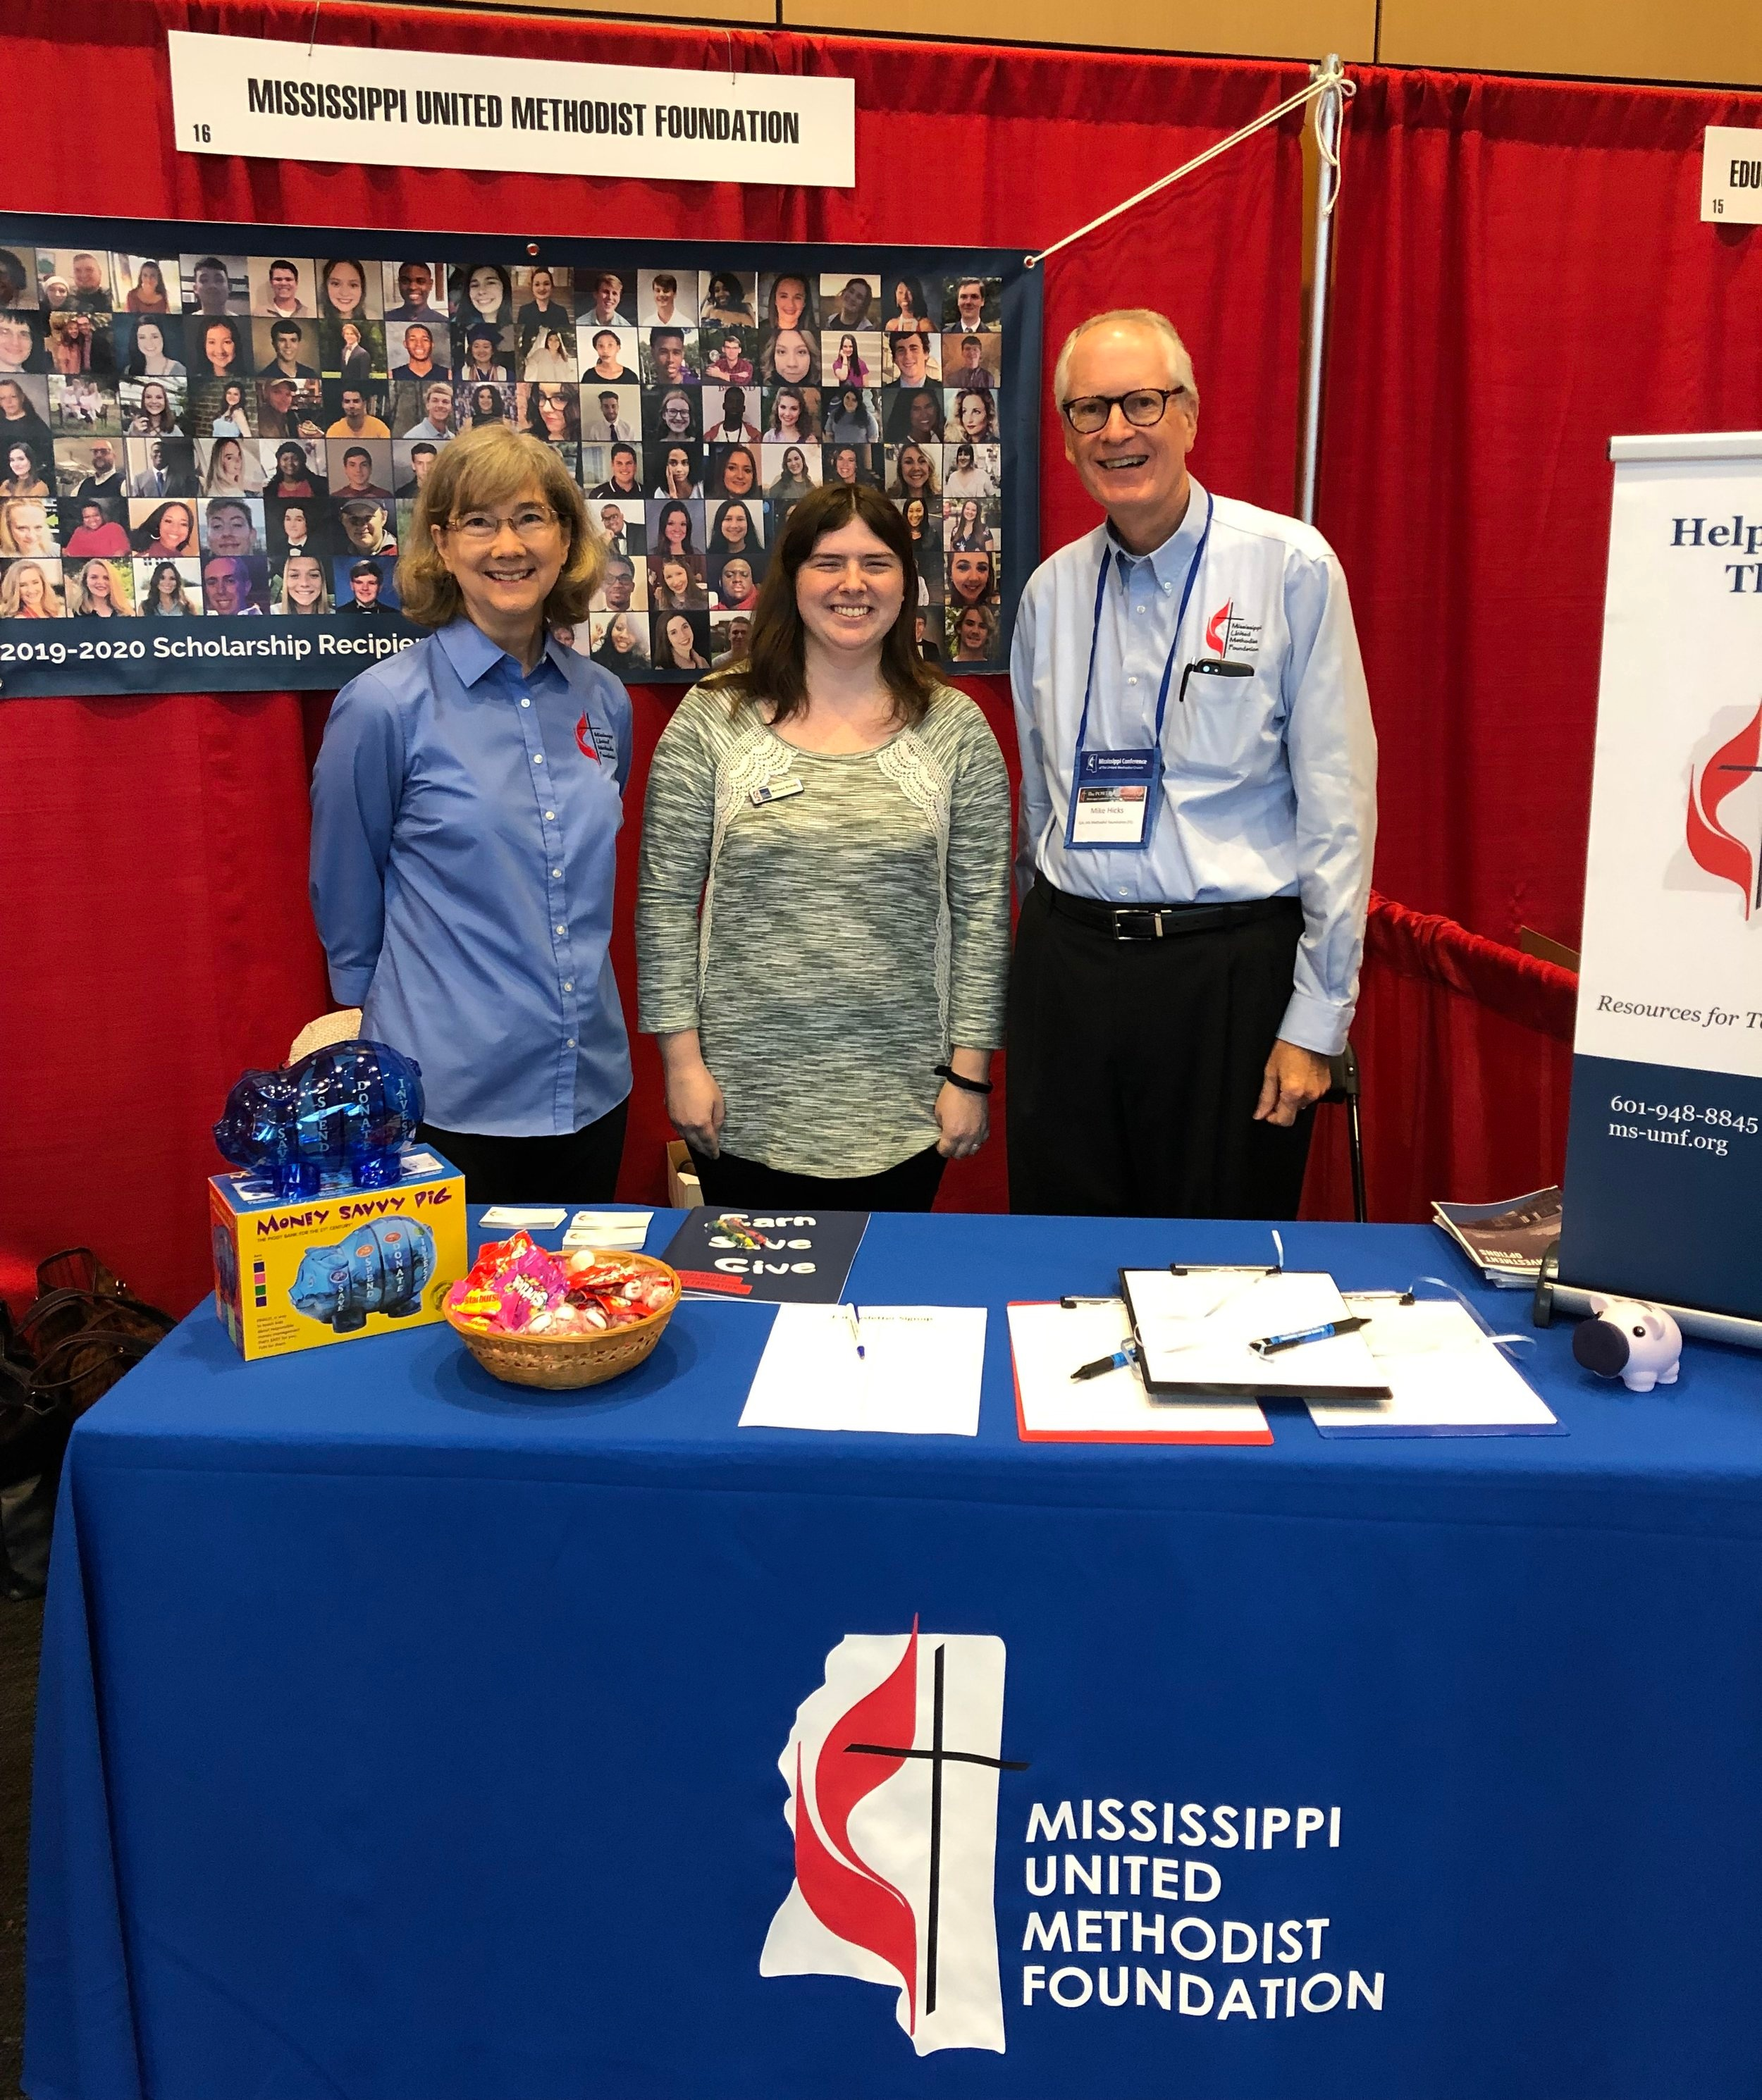 Mary Lee Reed, Melissa Blakely, and Mike Hicks during the 2019 Mississippi Annual Conference